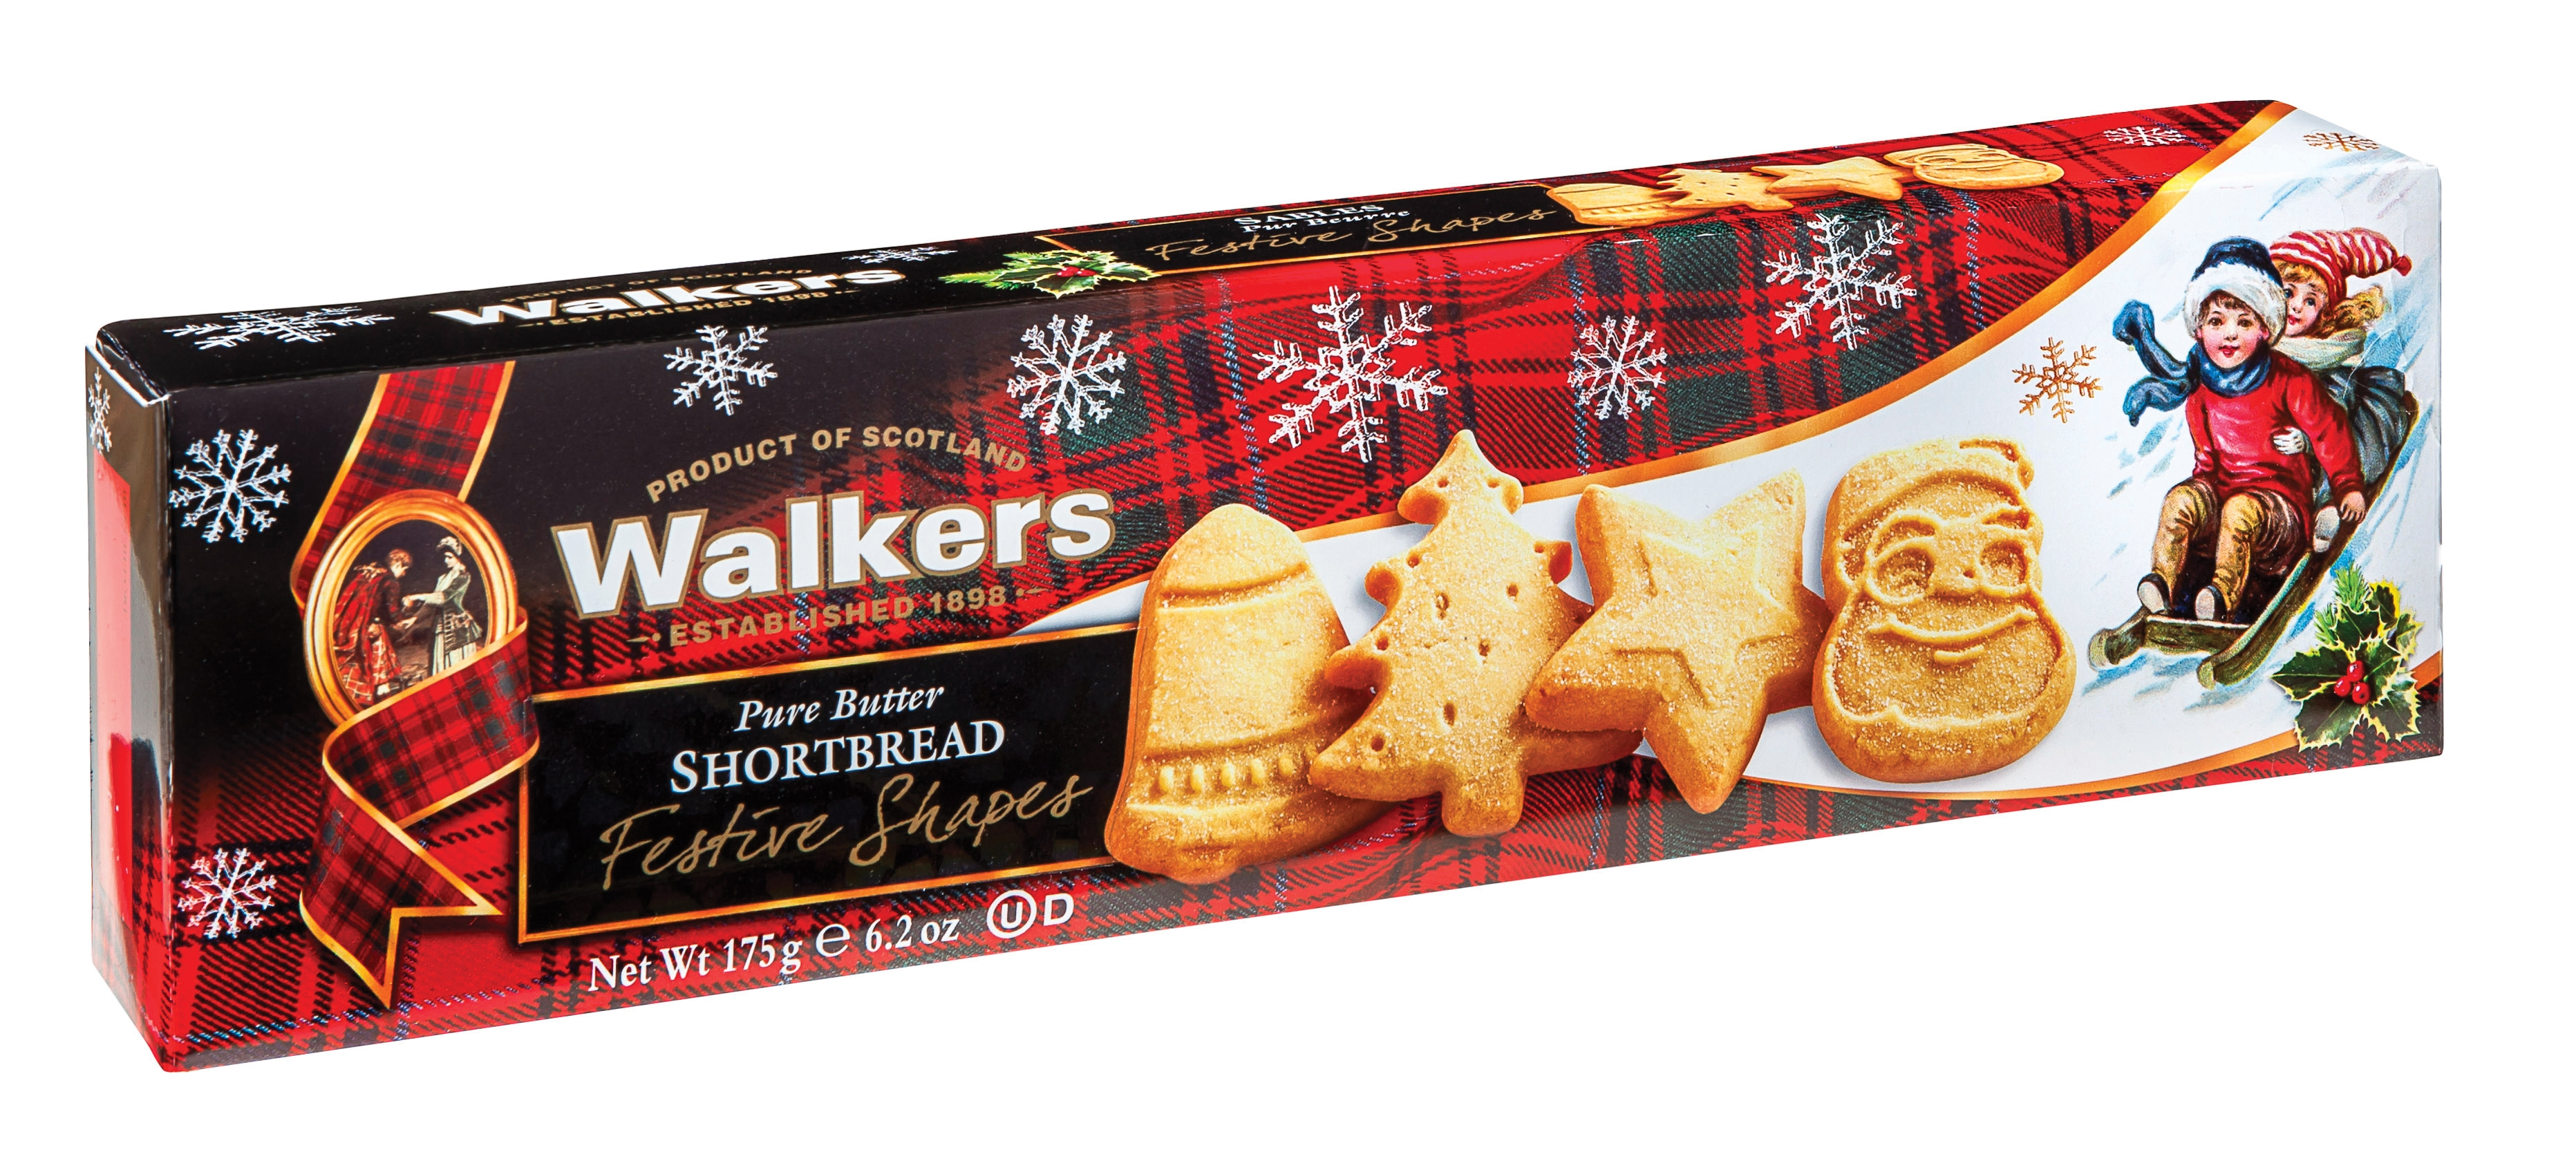 Shortbread Tasty Walkers Shortbread Gifts For Friends And Family